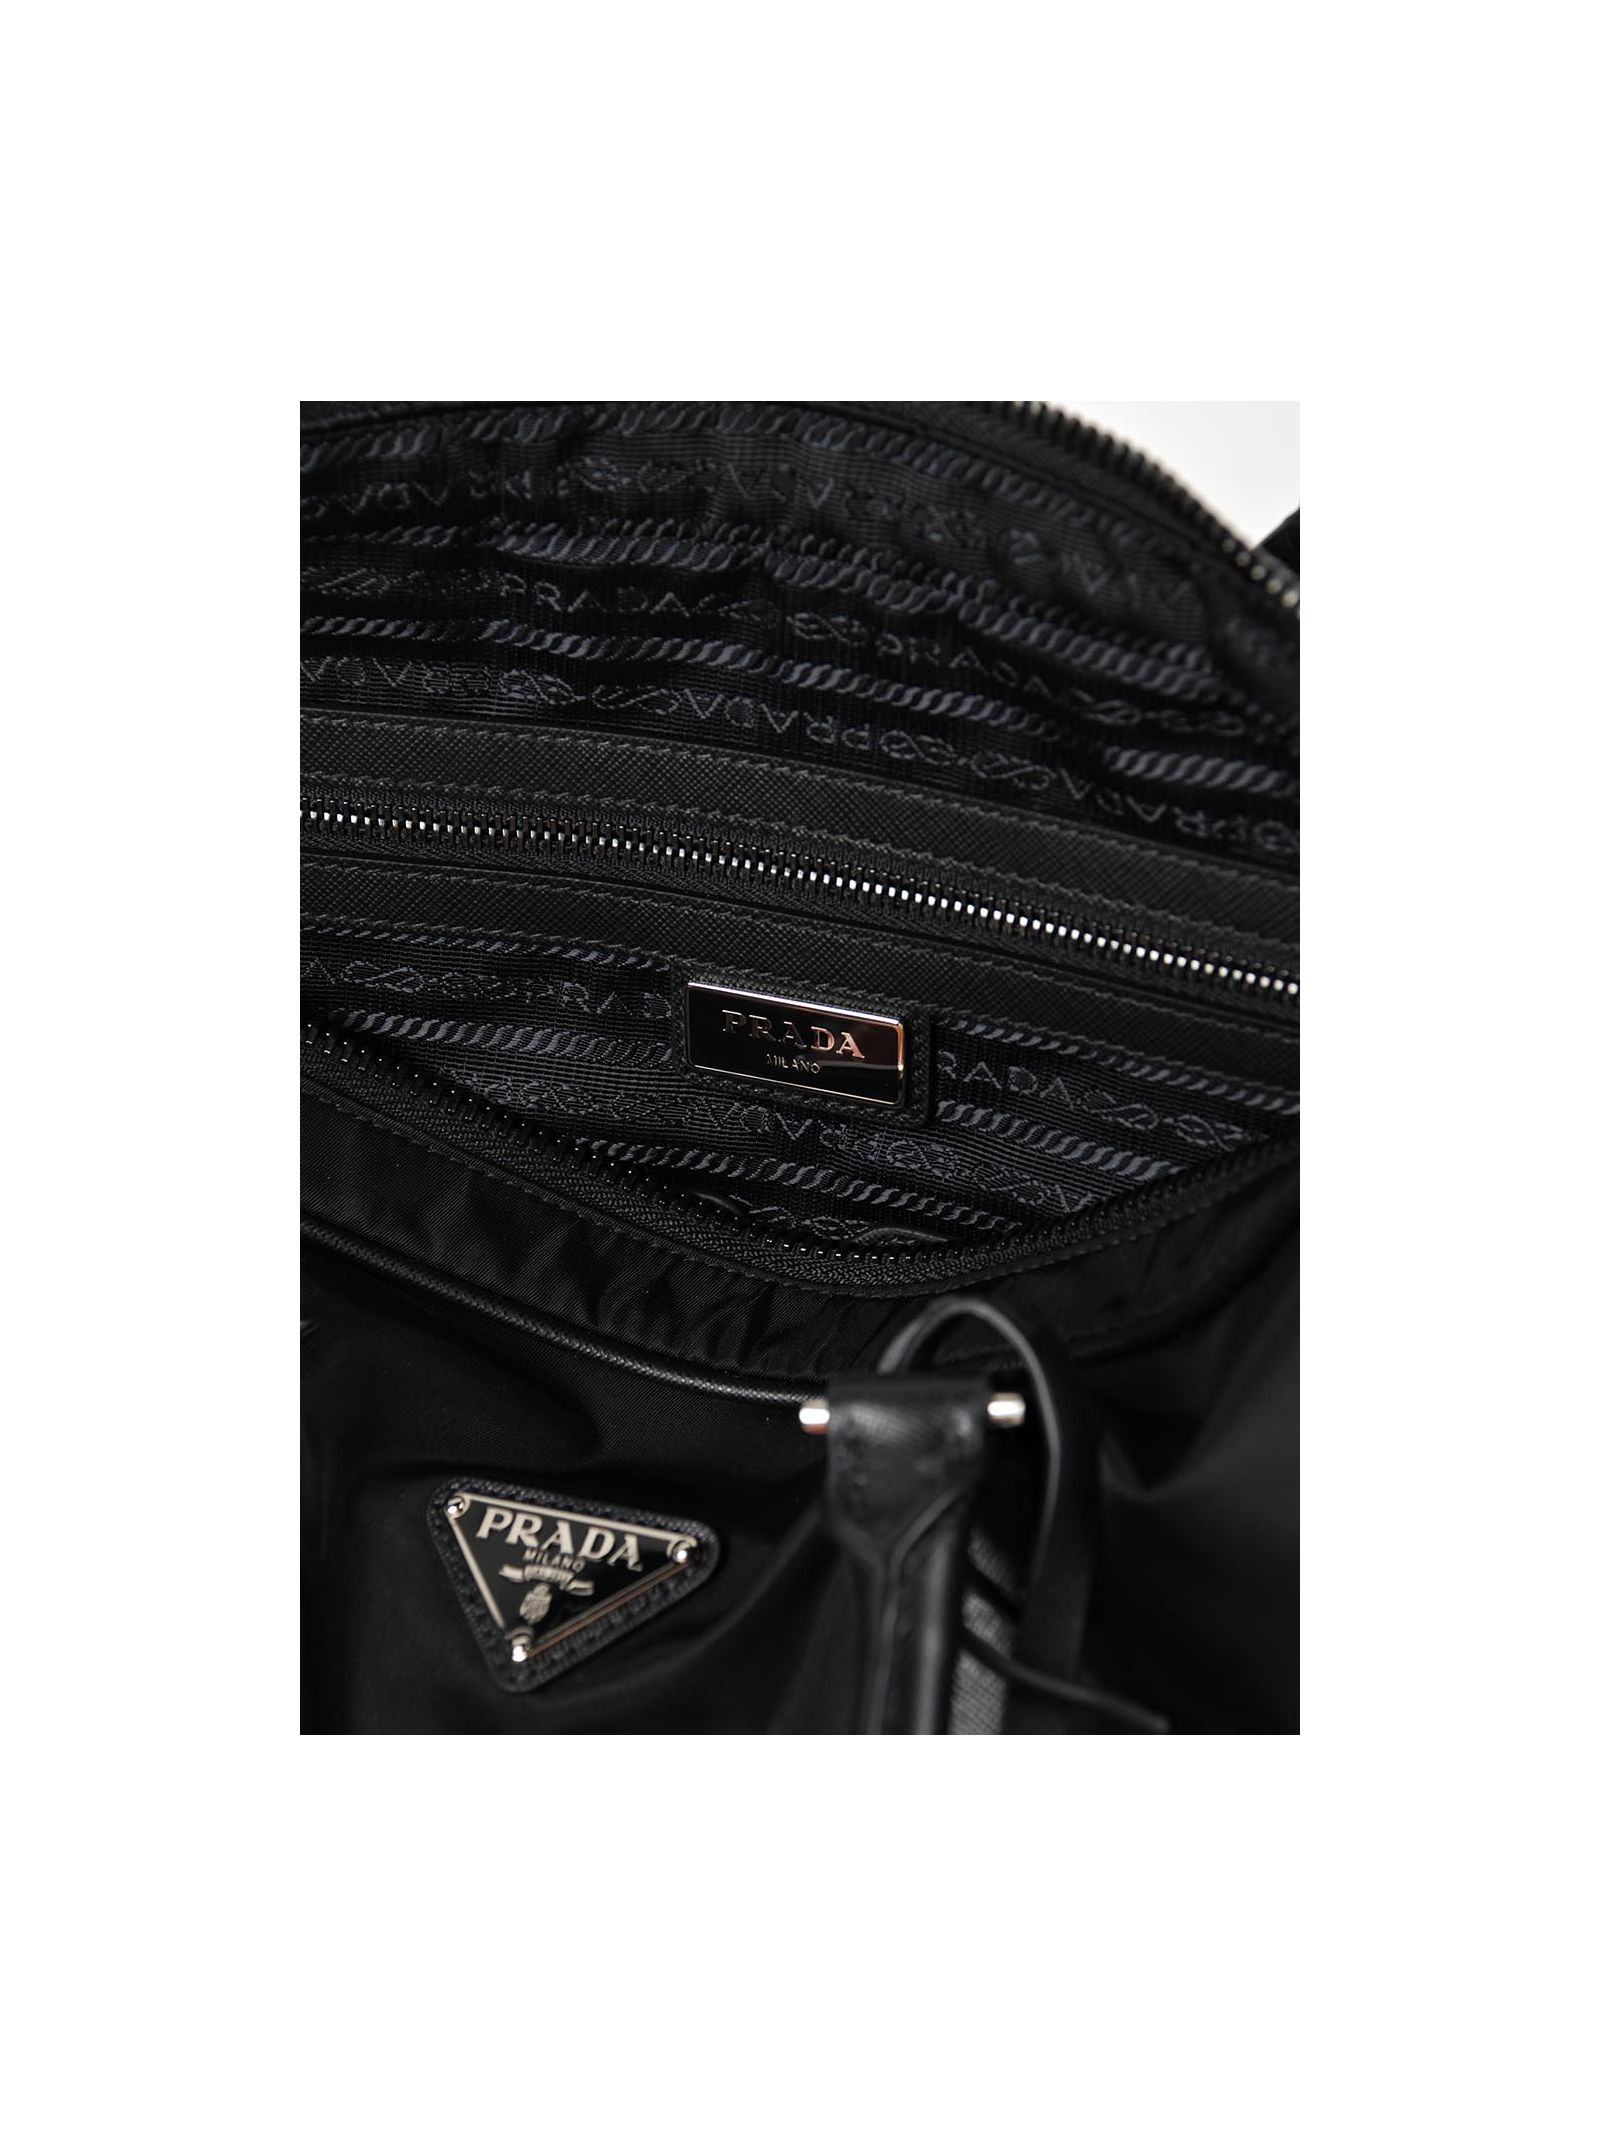 prada bag designs - Prada Tessuto+saffiano in Black (Nero) | Lyst